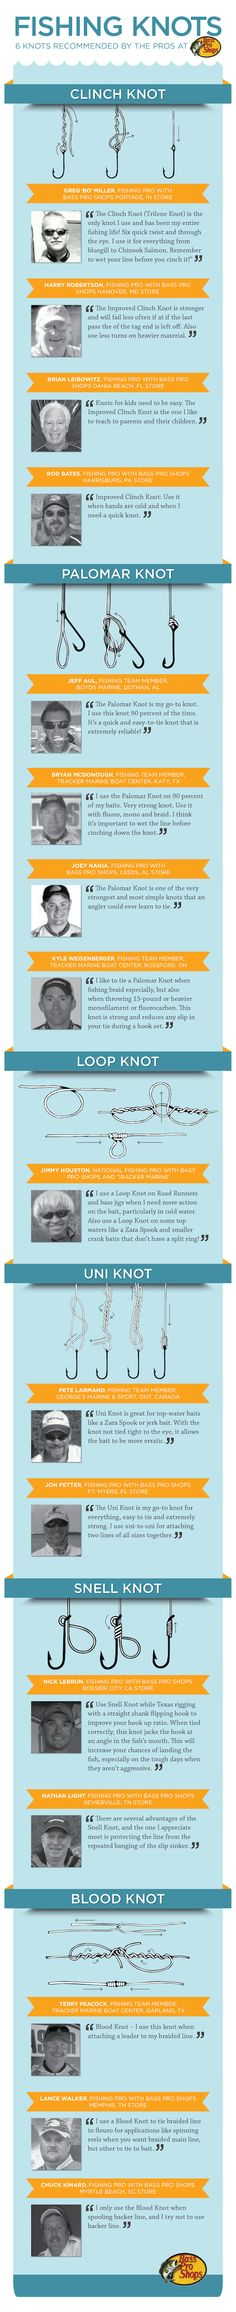 Fishing Knots The Pros Use [Infographic]